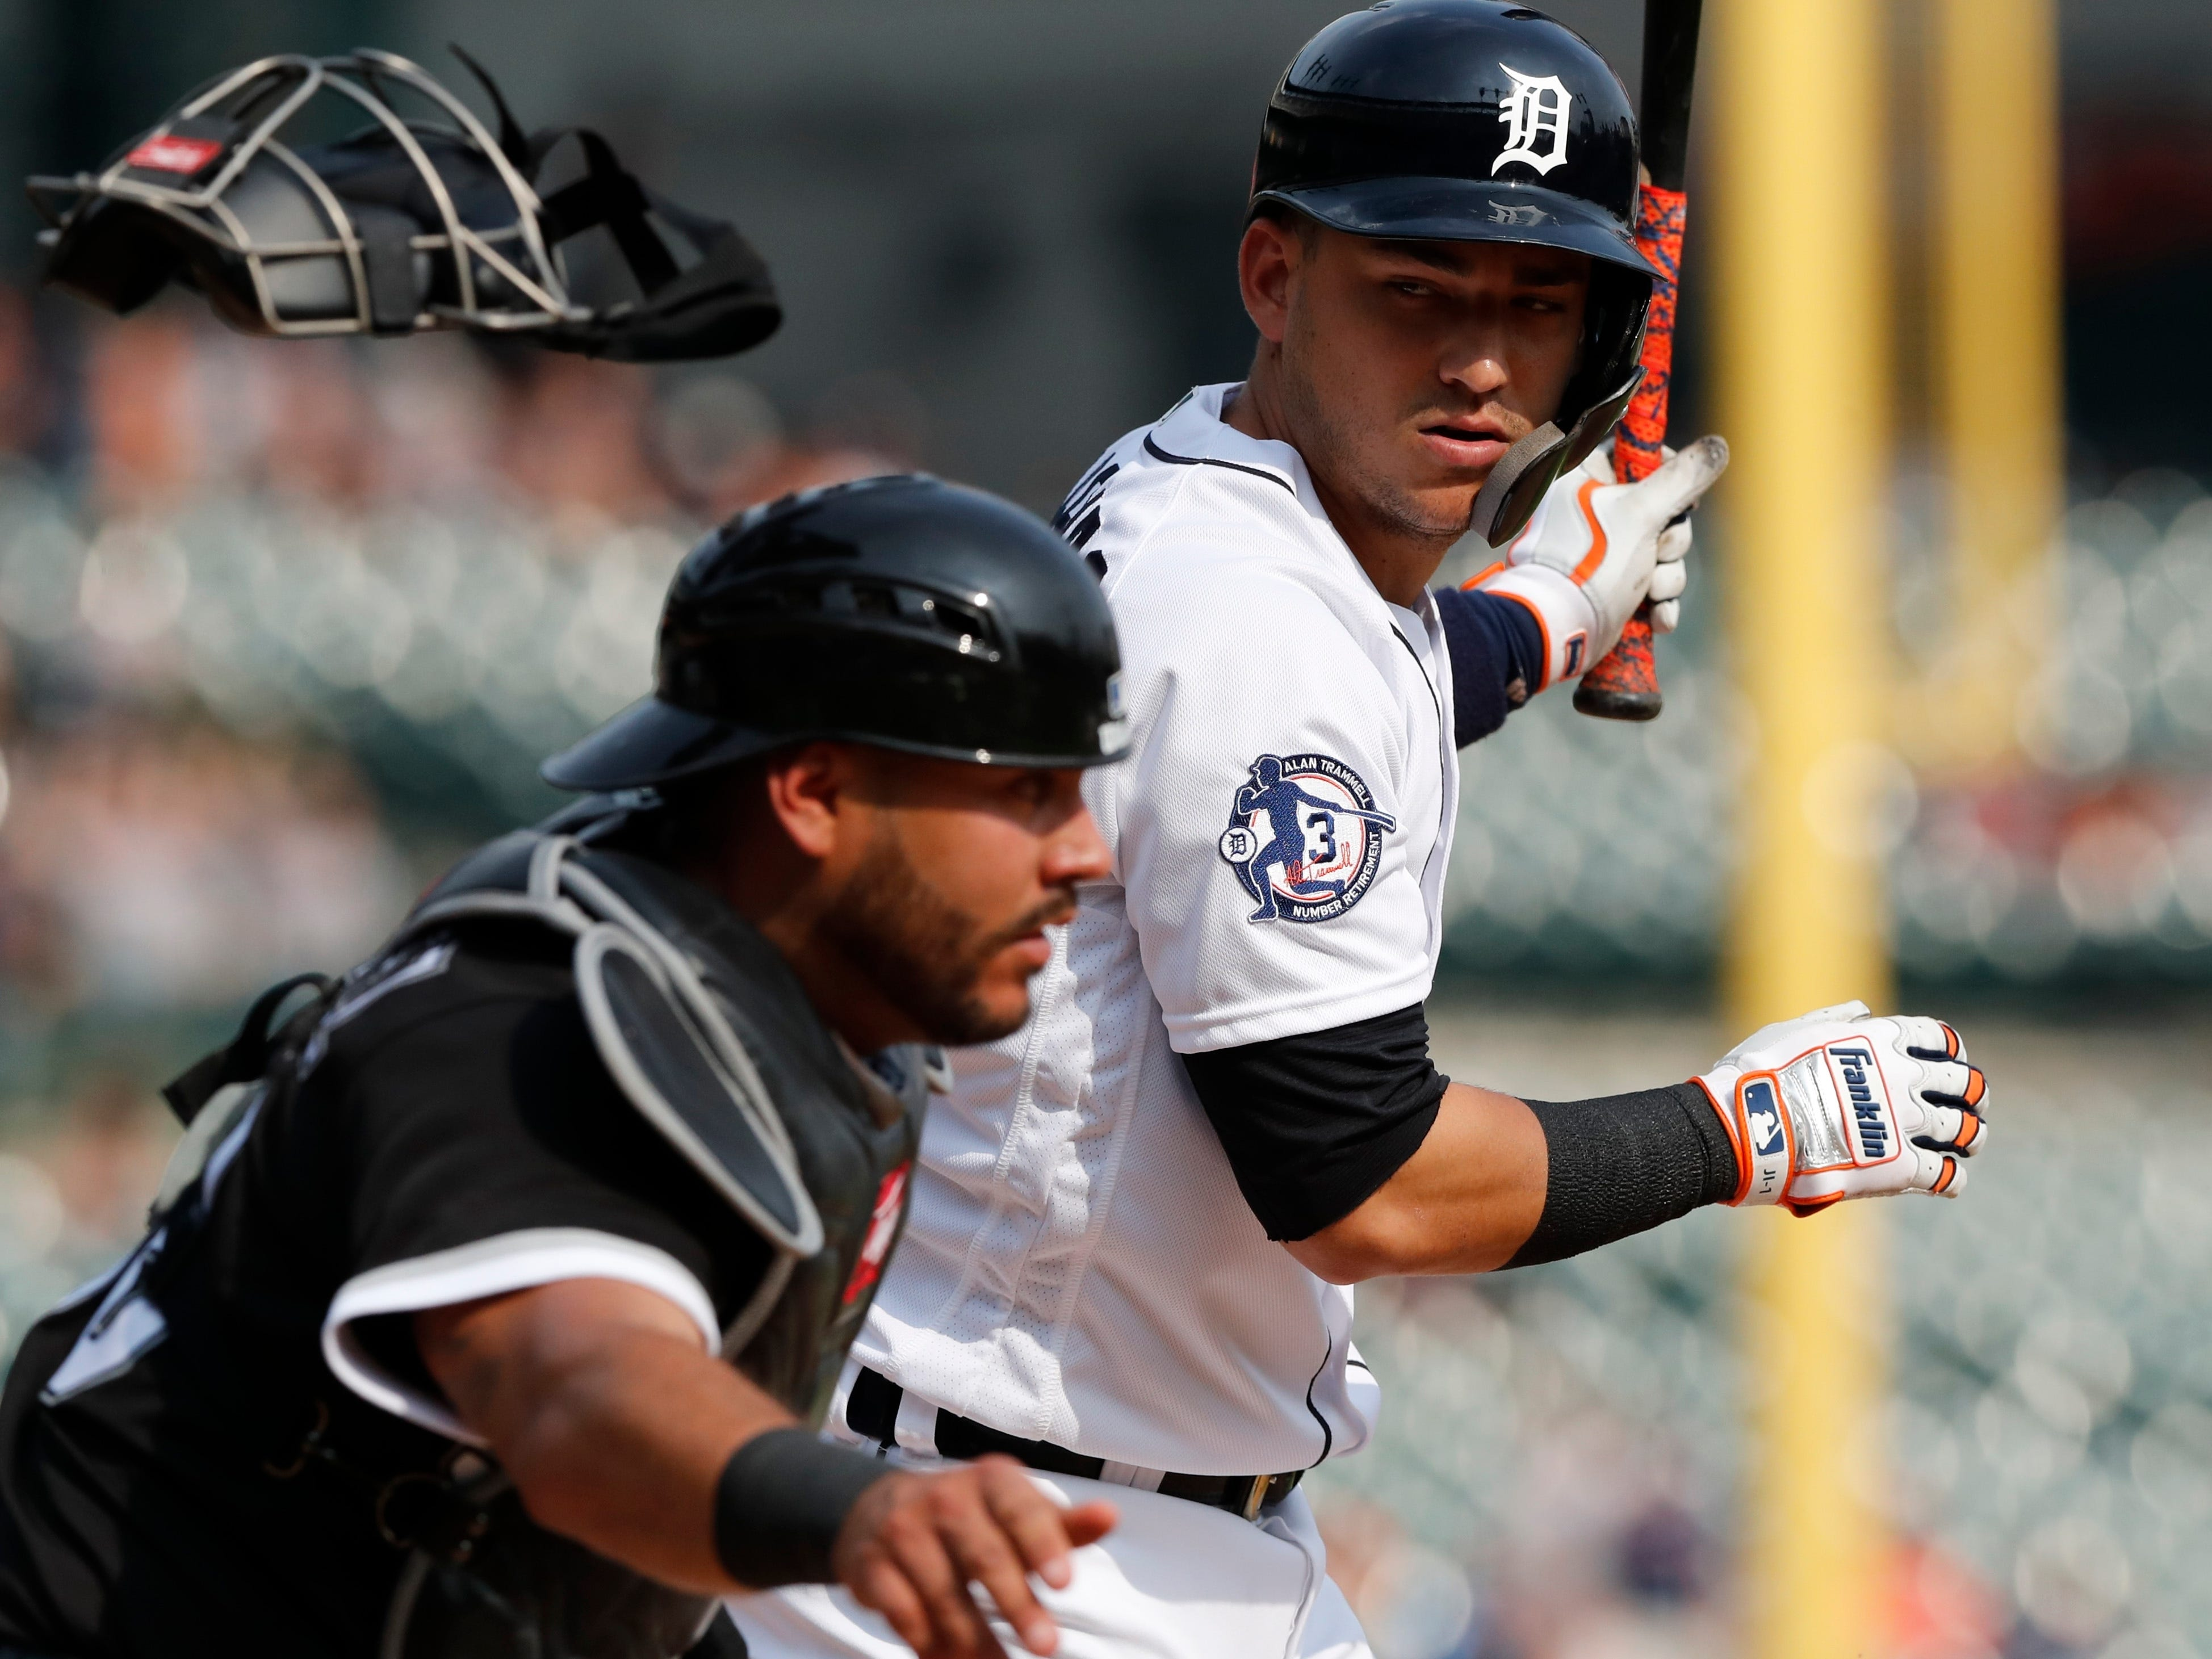 Detroit Tigers' Jose Iglesias looks back as Chicago White Sox catcher Omar Narvaez chases the ball after Iglesias struck out to end the baseball game.